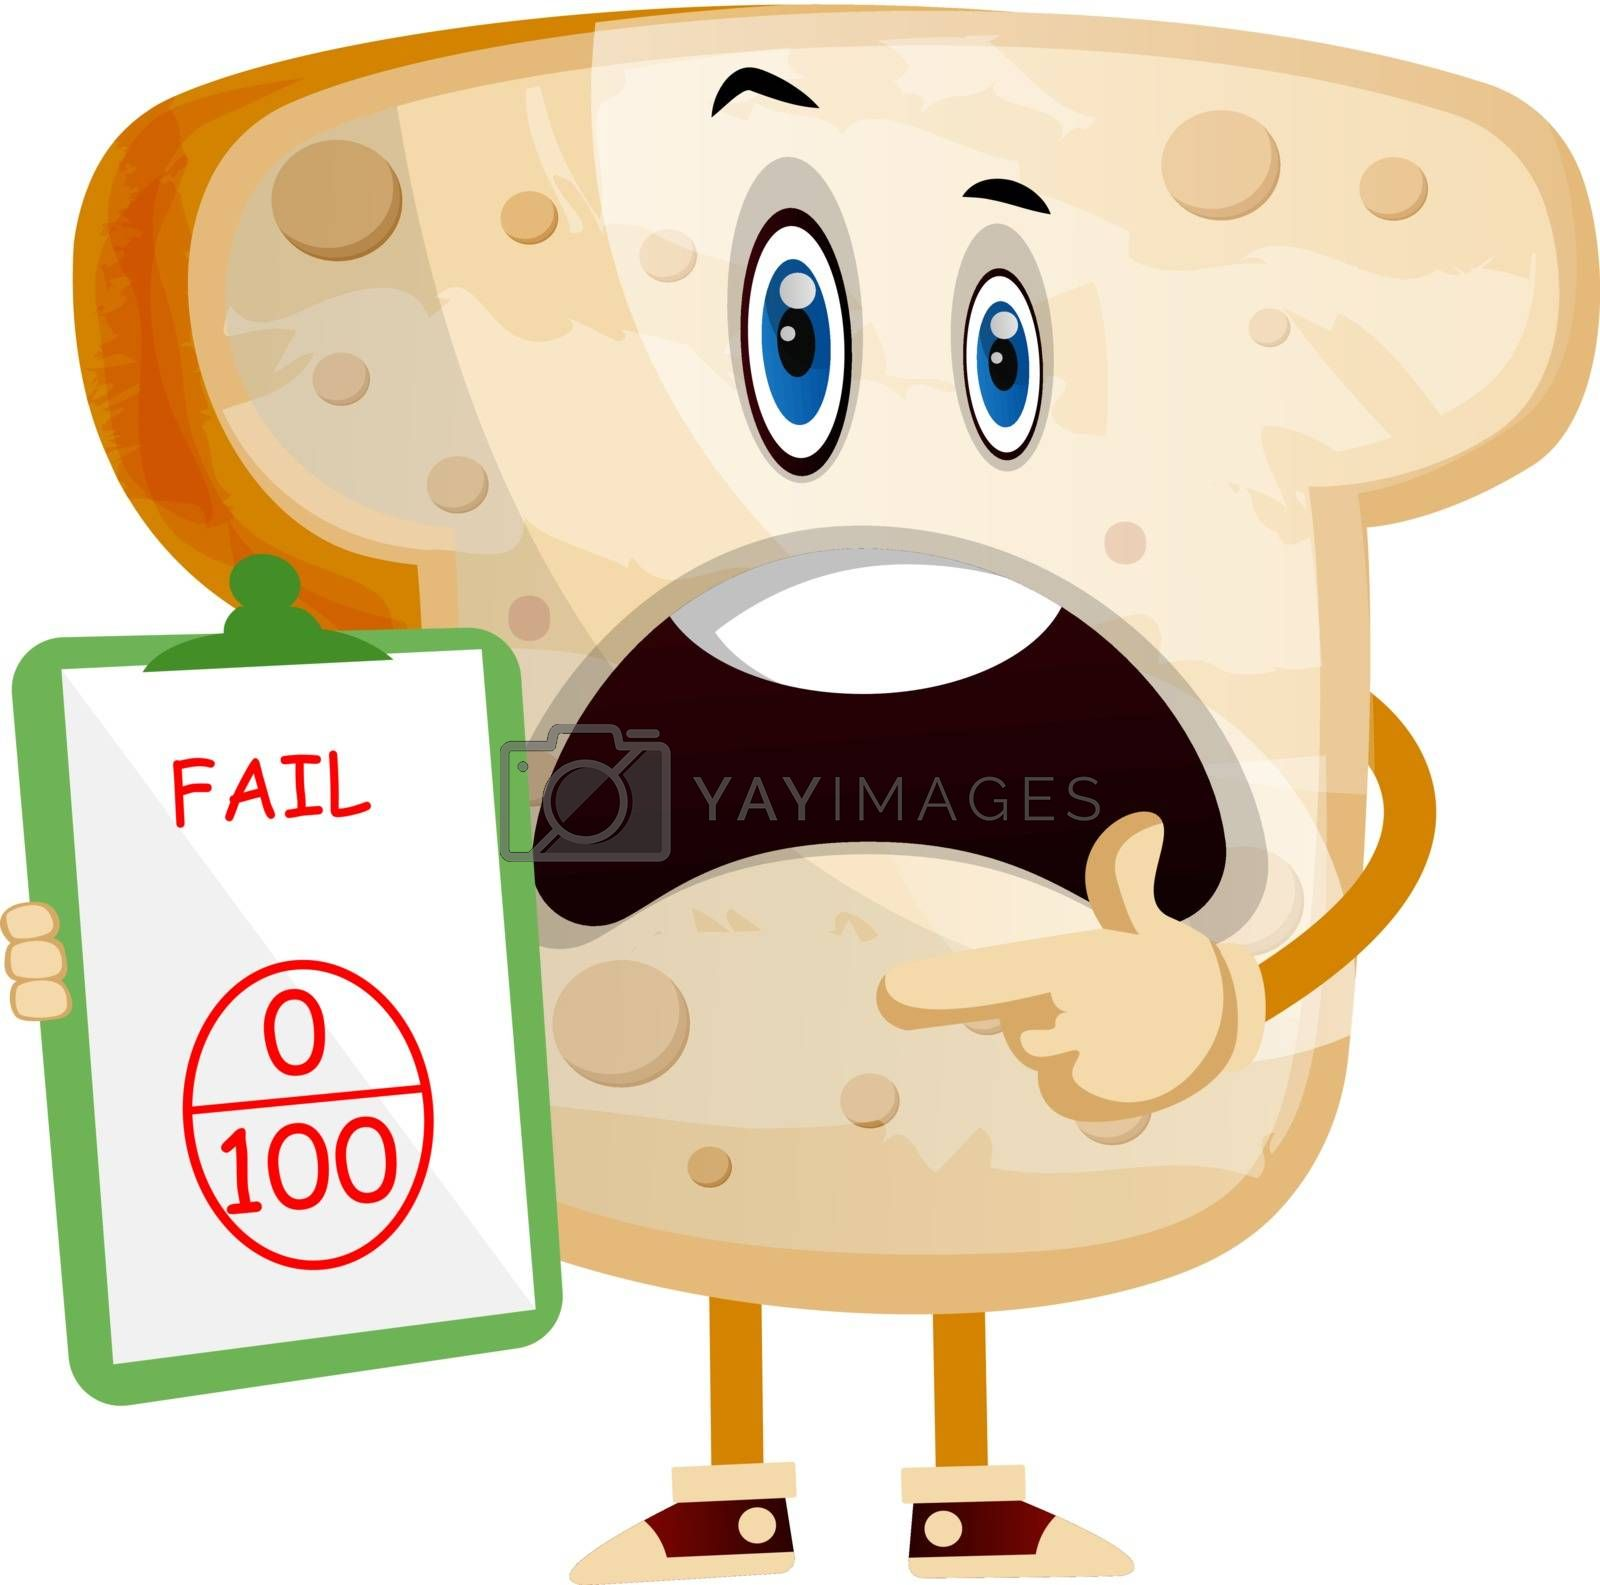 Royalty free image of Bad Bread illustration vector on white background by Morphart